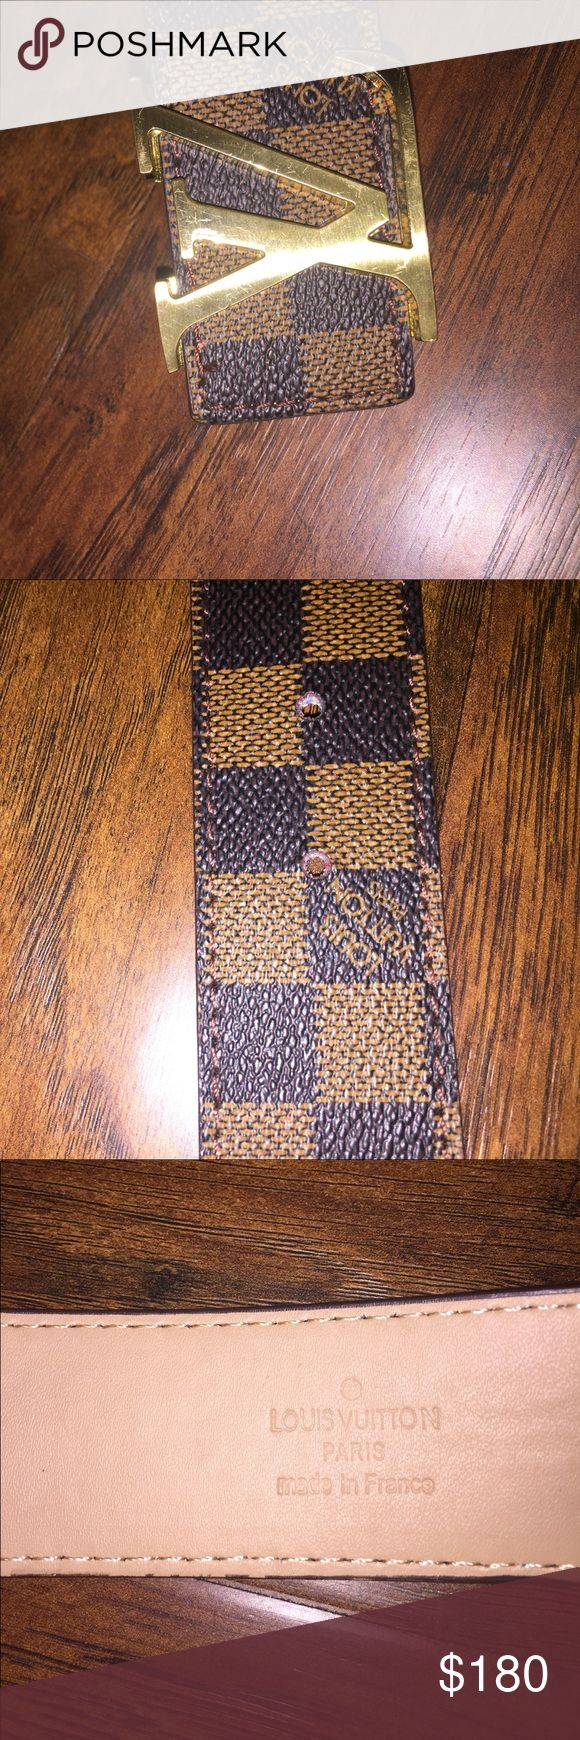 Louis Vuitton belt 100% authentic made in France. This is a real Louis Vuitton with no scratches, stains, or scuffs it's in perfect condition. Louis Vuitton Accessories Belts